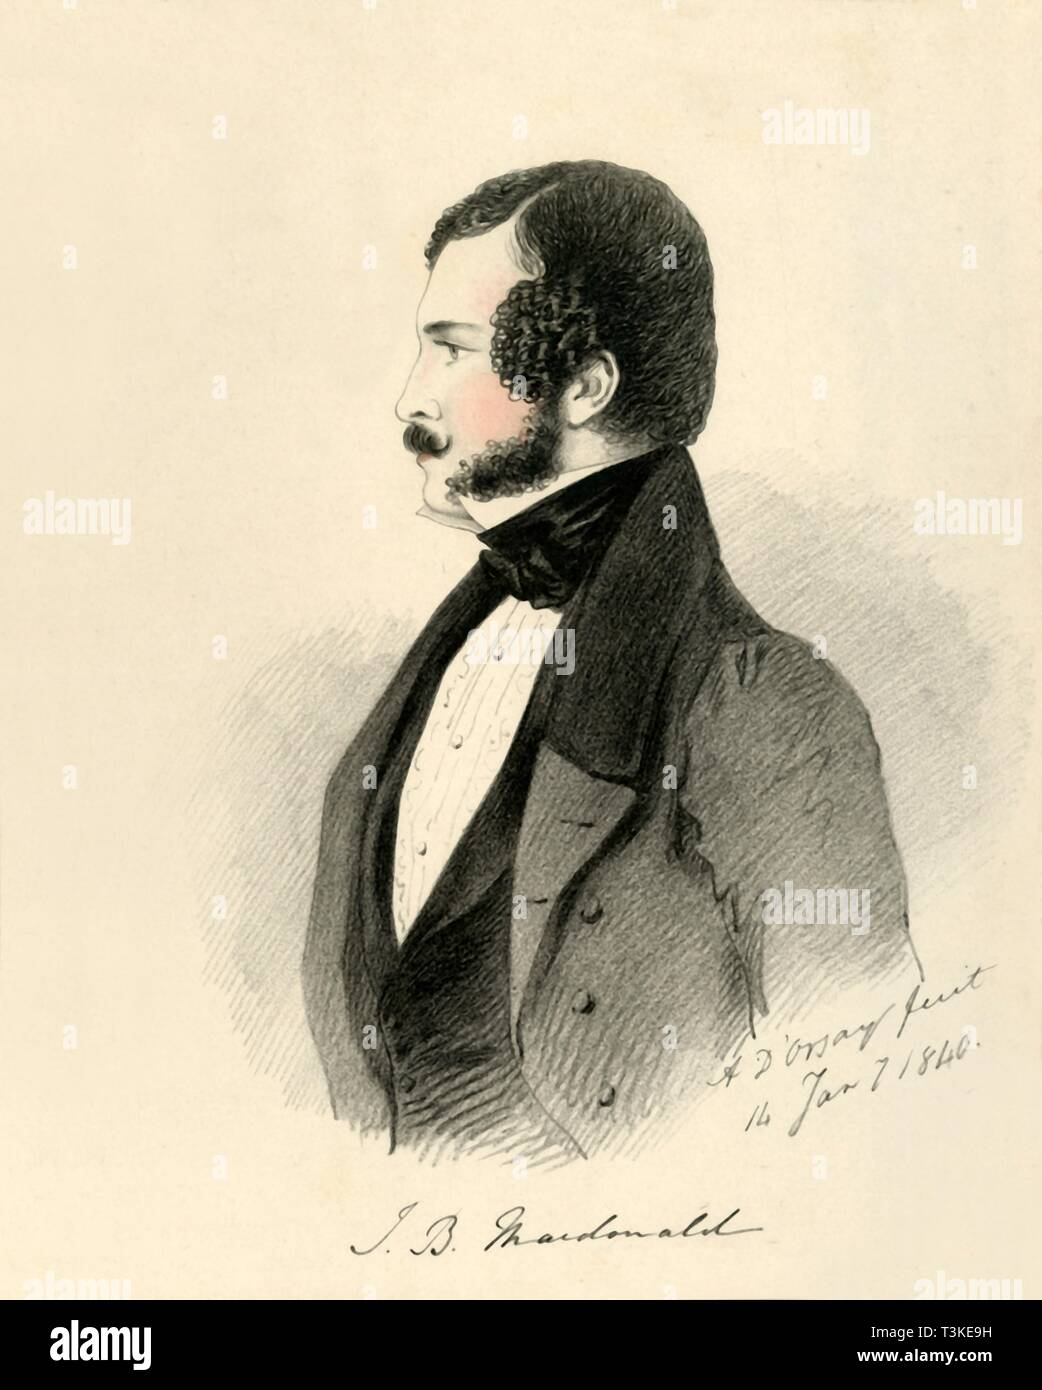 "'J. B. Macdonald', 1840. Portrait of 'The Honourable James Macdonald, 1st Life Guards'. From ""Portraits by Count D'Orsay"", an album assembled by Lady Georgiana Codrington. [1850s] Stock Photo"